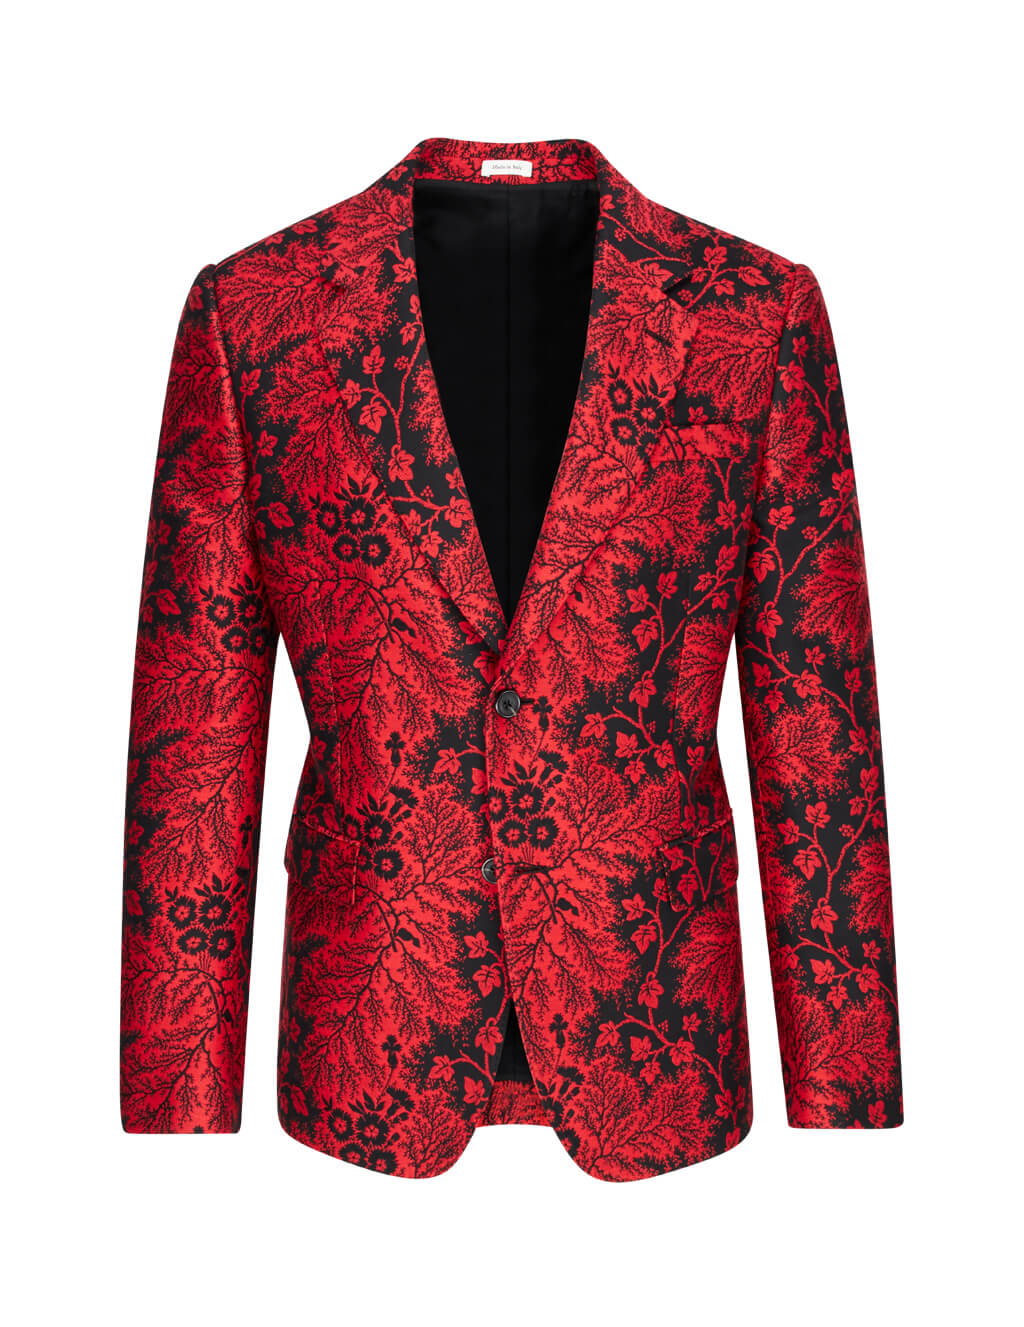 Alexander McQueen Men's Red Ivy Creeper Jacquard Jacket 595140QOR581062